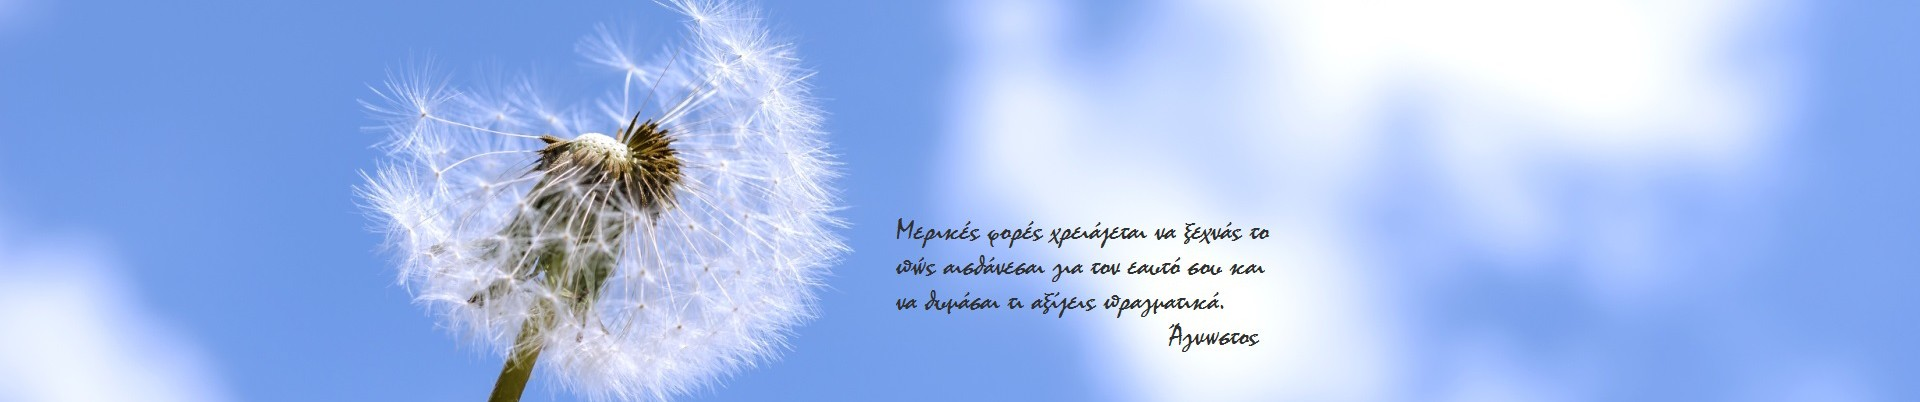 Spring sky & quote